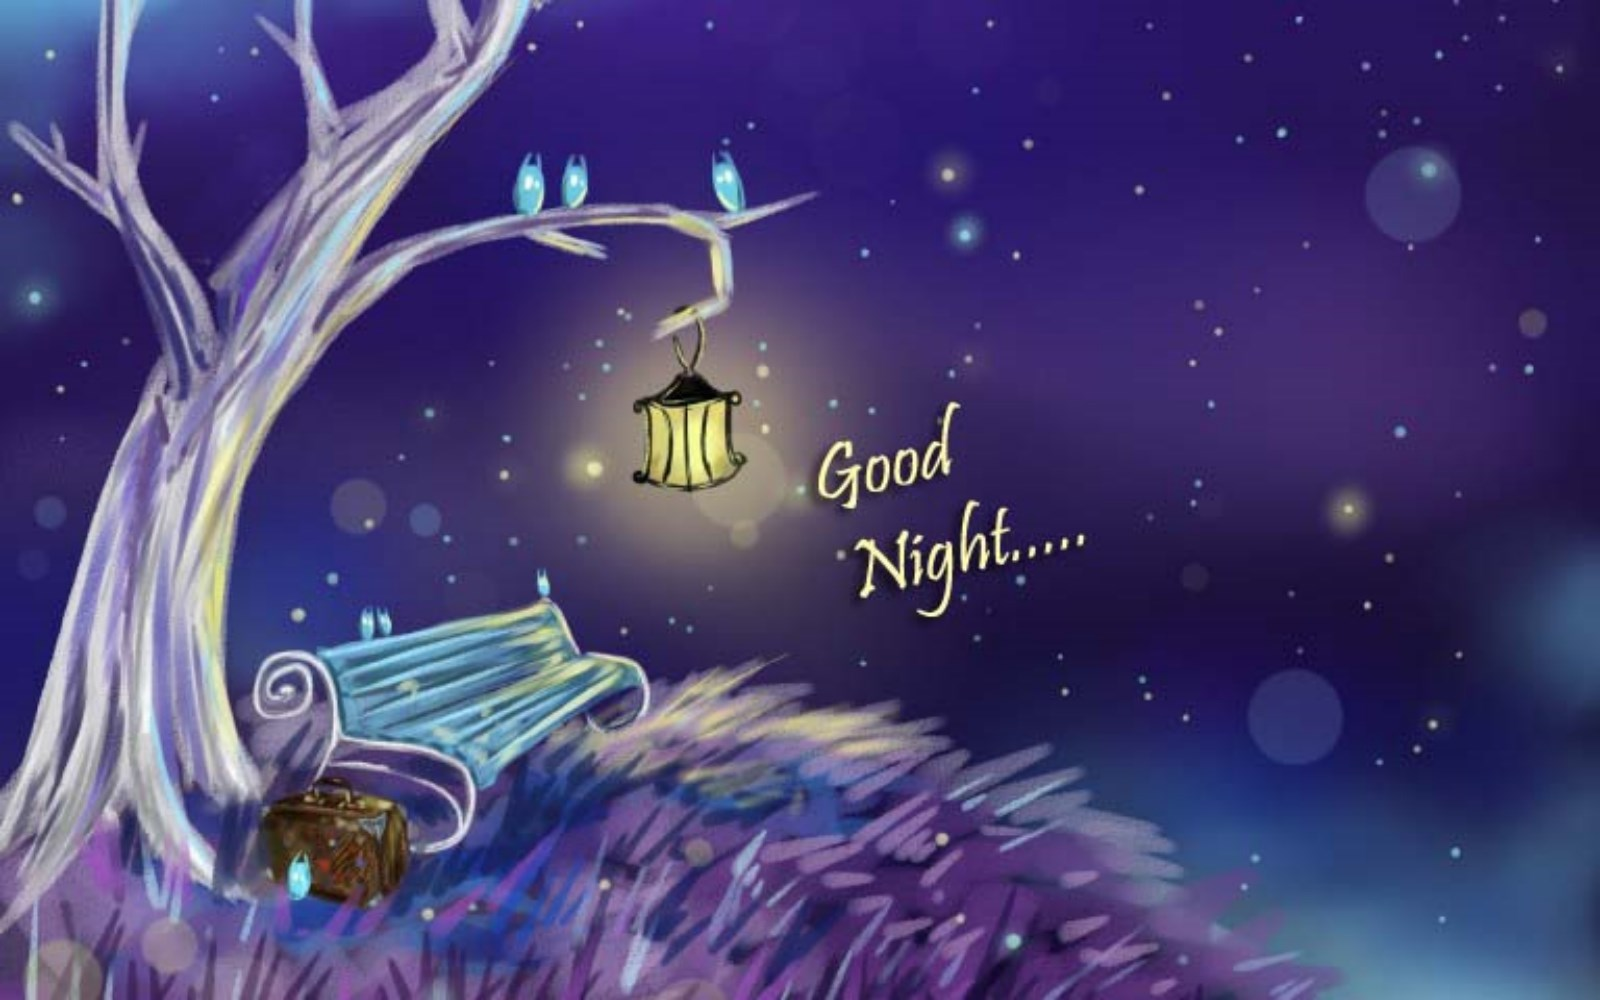 Free Download Romantic Good Night Hd Wallpapers 9 Hd 1600x1000 For Your Desktop Mobile Tablet Explore 78 Goodnight Wallpapers Free Good Night Wallpapers Good Night Wallpapers For Facebook Beautiful Good Night Wallpapers